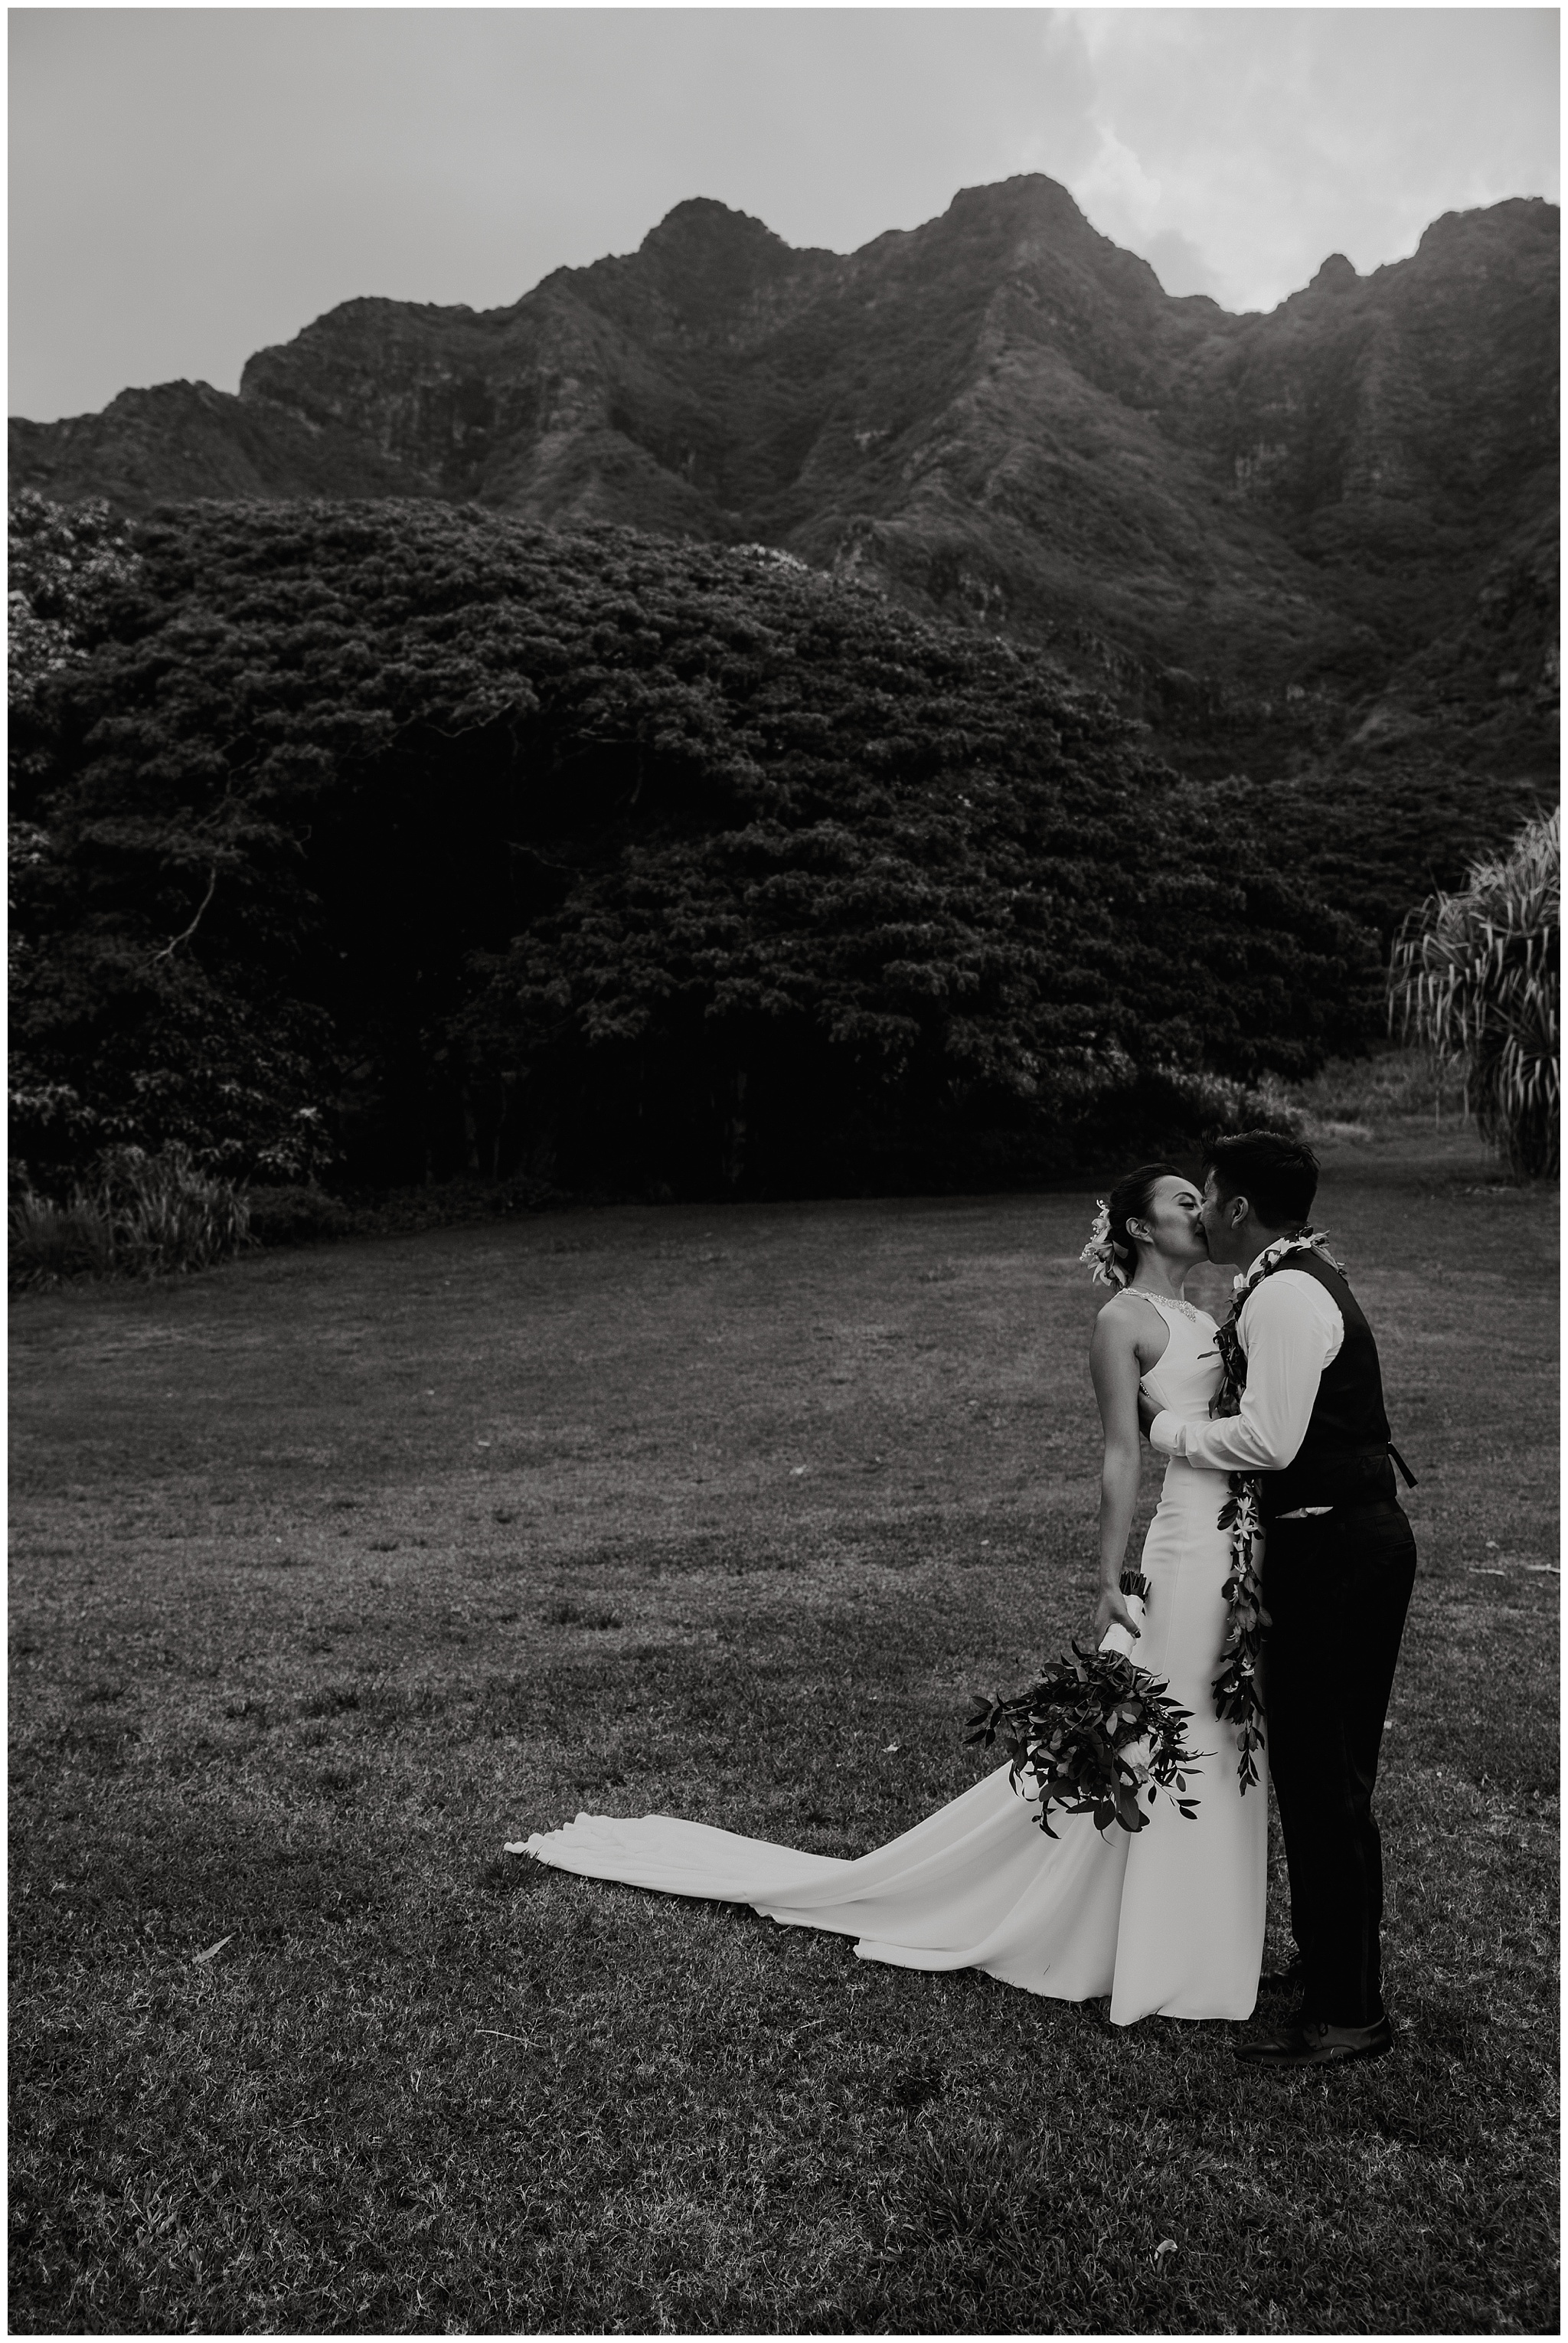 kualoa_ranch_wedding10.jpg